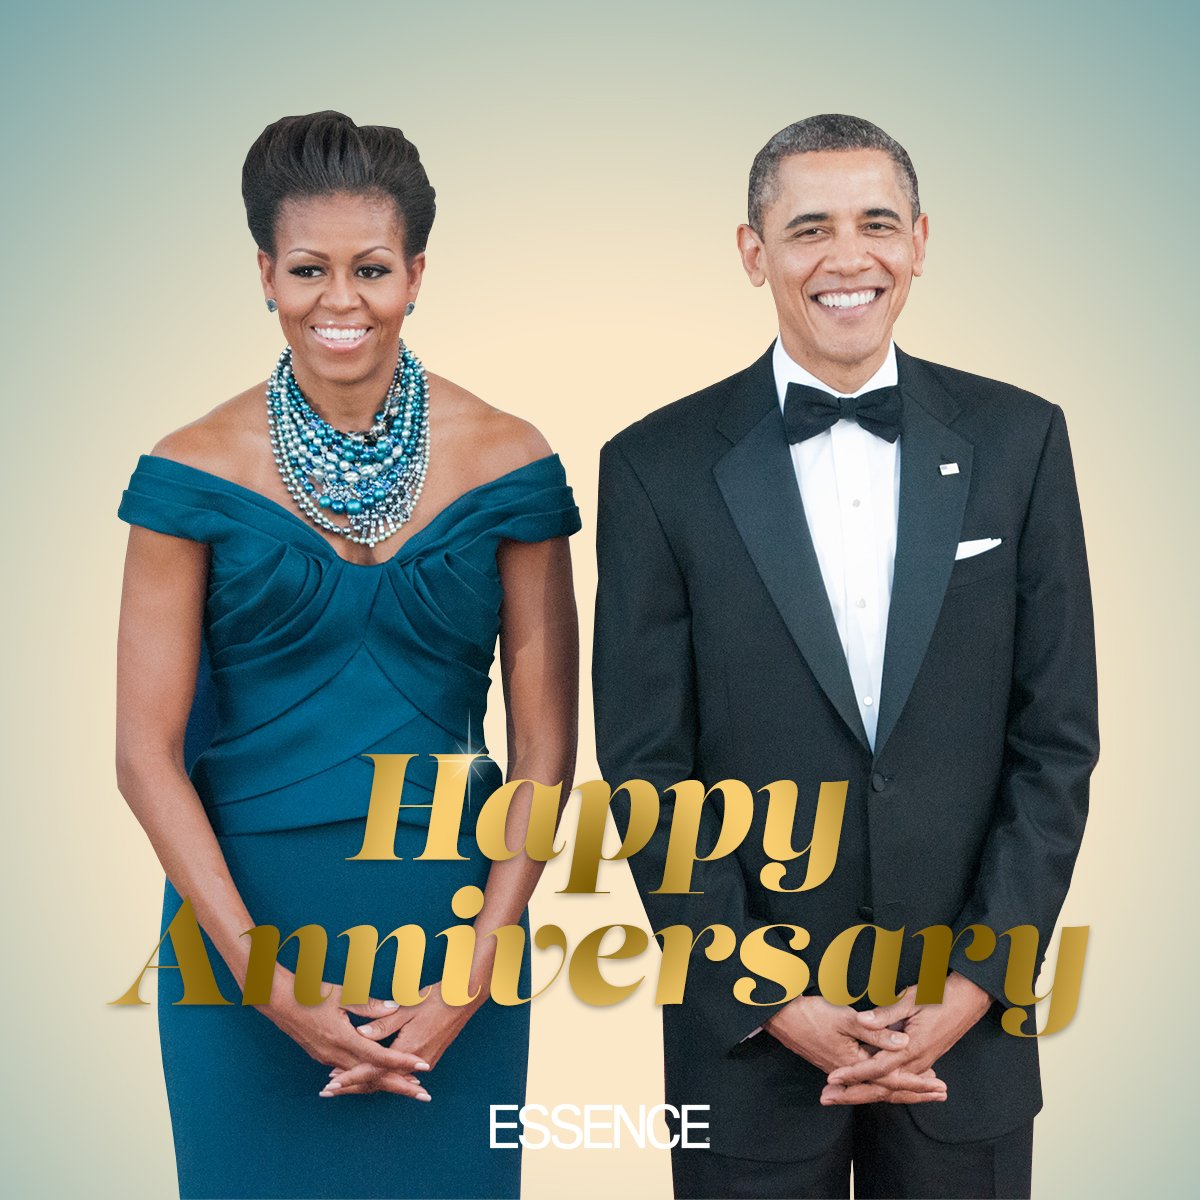 Happy 24th Anniversary to President Barack Obama and First Lady Michelle Obama! We wish them many more years of eve… https://t.co/bNDLhb6TbC